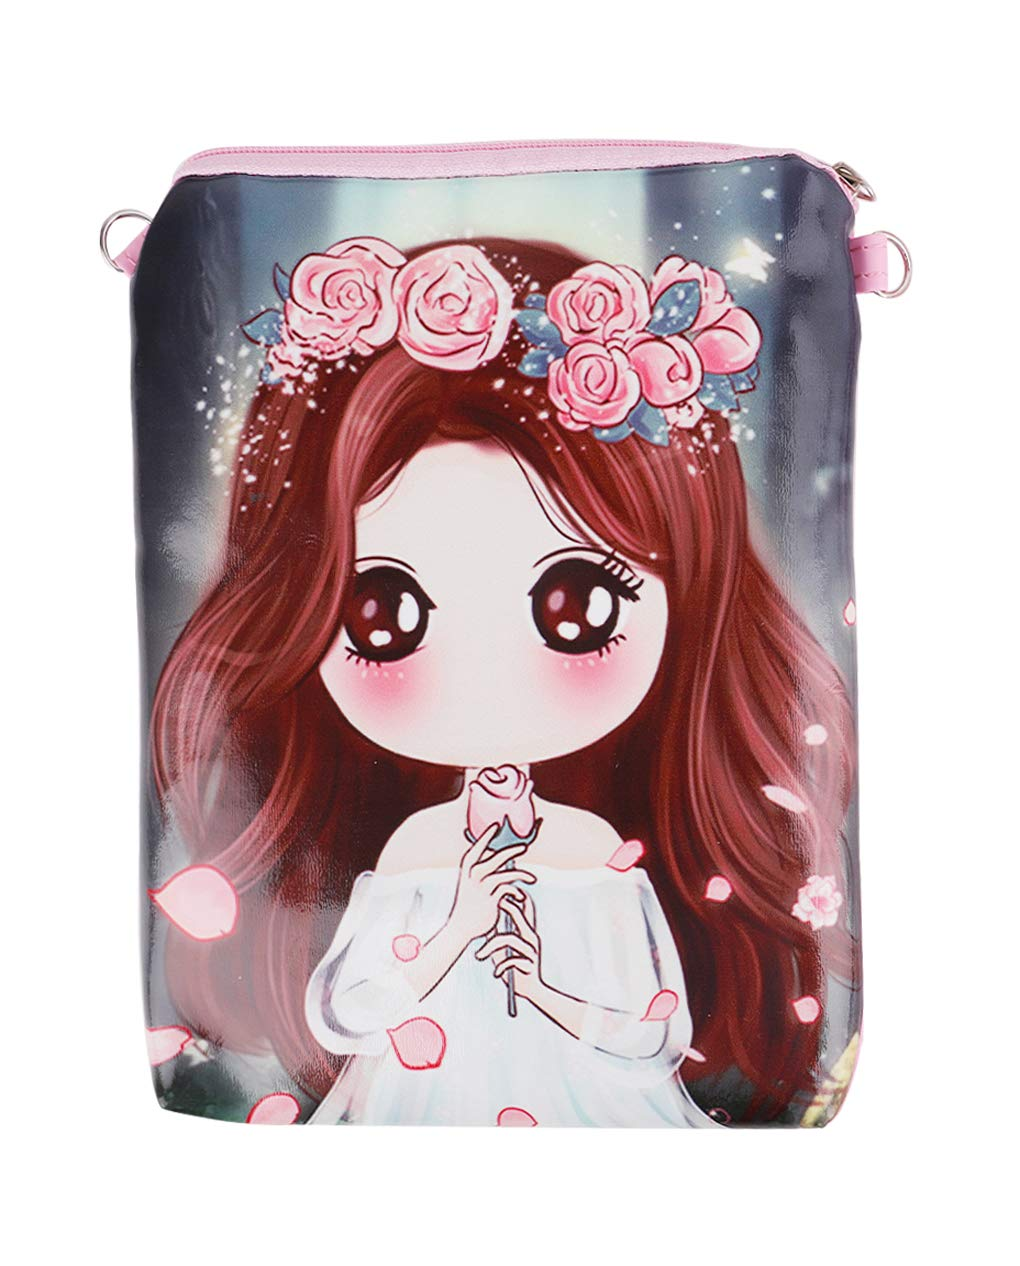 Fakeface Girls Cartoon Crossbody Bags PU Leather Keys Cell Phone Holders Purse Pouches, Xmas Gift